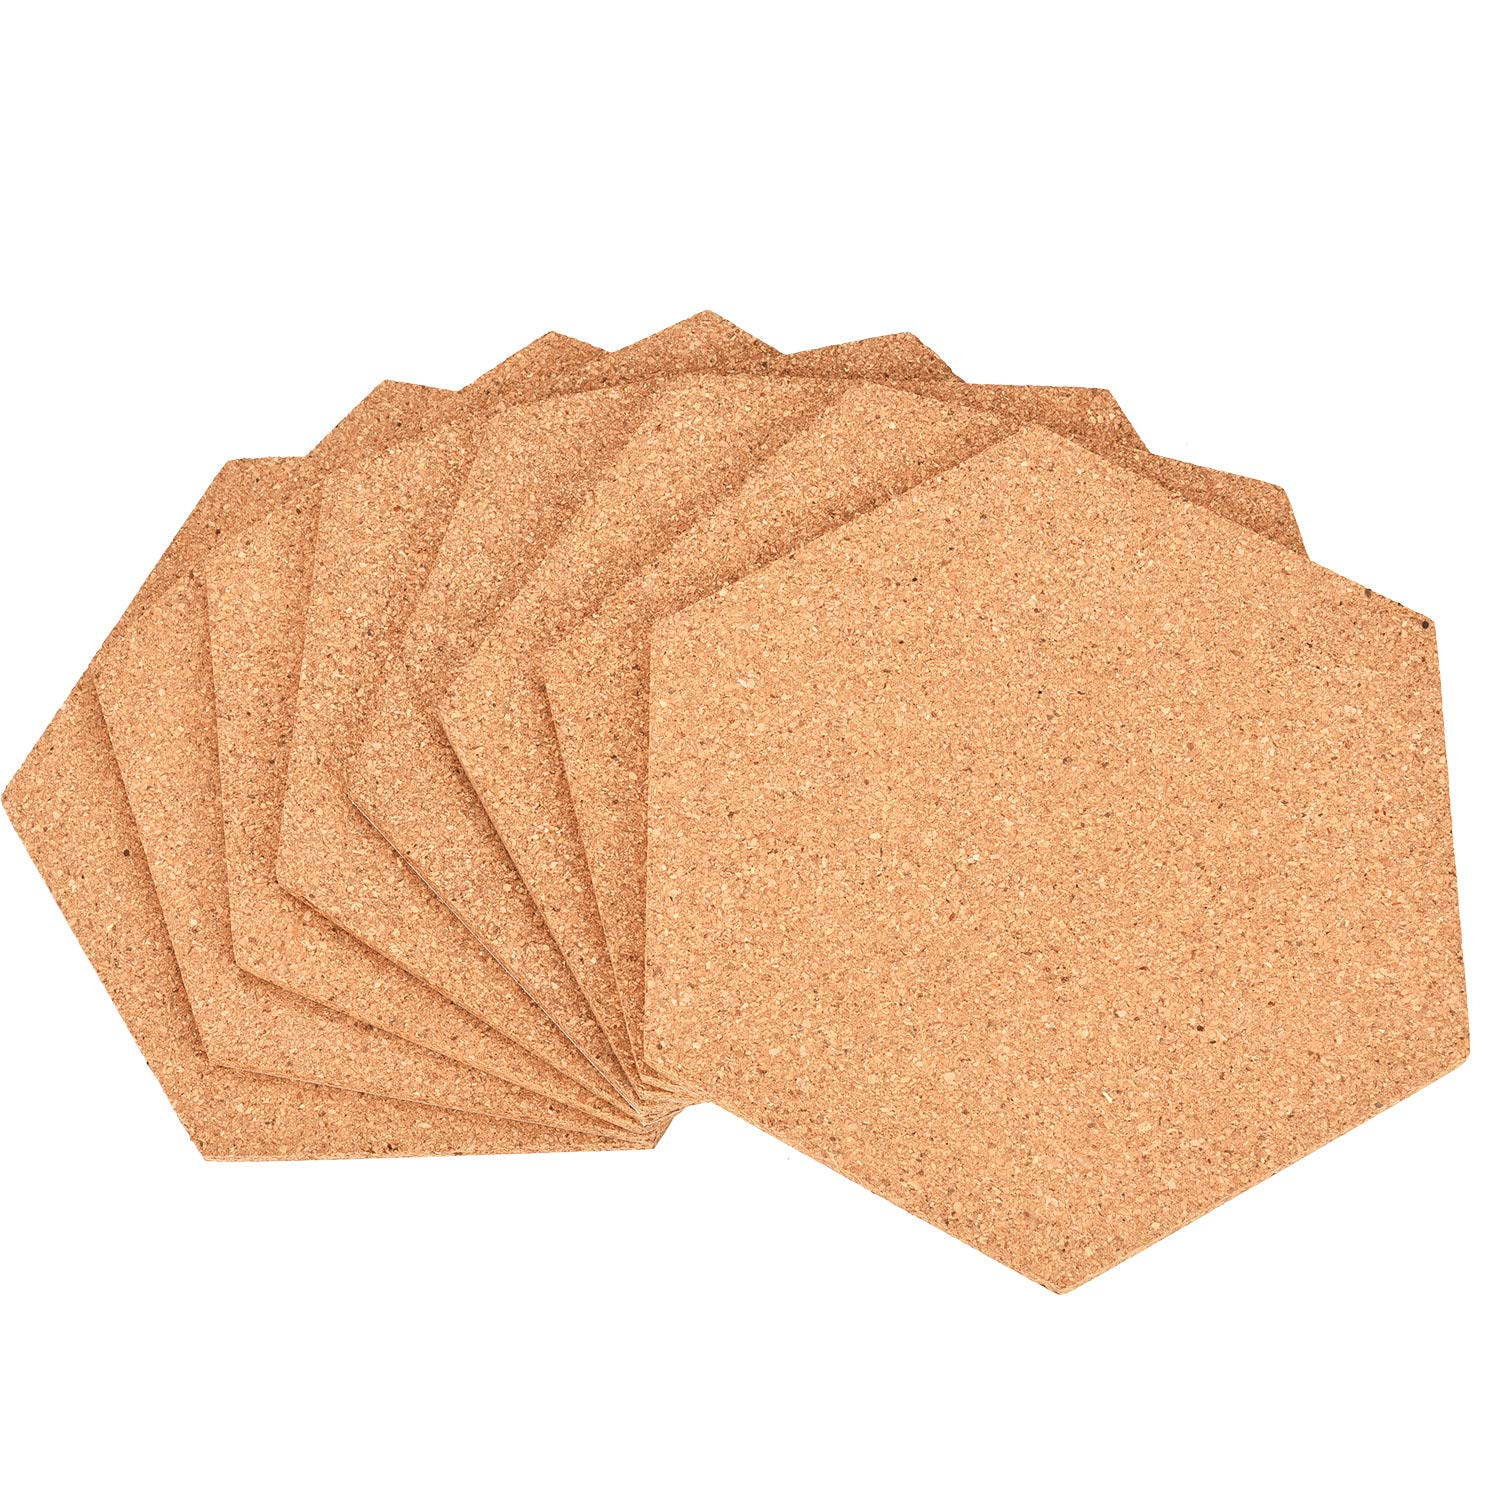 Maxdot 8 Pack Hexagon Shape Cork Board Adhesive Bulletin Board Wood Message Billboard Frameless Picture Boards for Home Office Classroom Wall Decoration (23.5 x 20.5 x 0.6 cm)